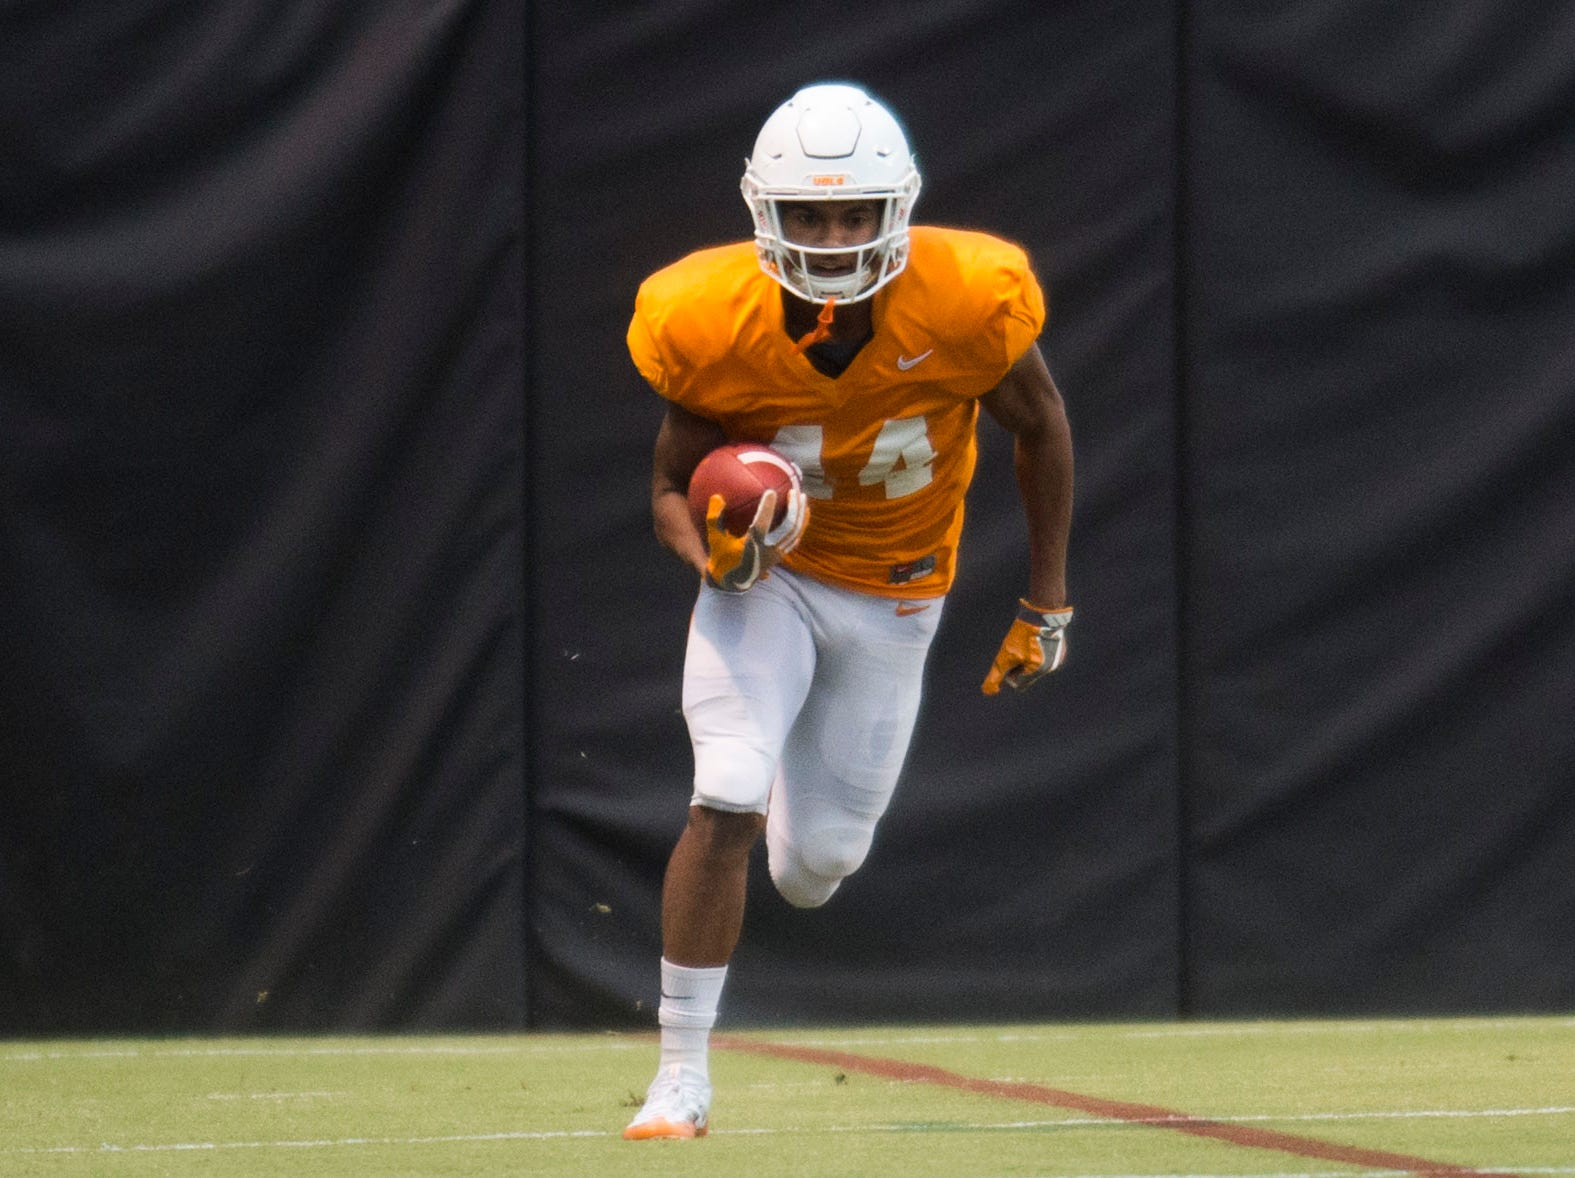 Tennessee defensive back Cheyenne Labruzza (44) runs the ball during a University of Tennessee football practice, Tuesday, Nov. 13, 2018.